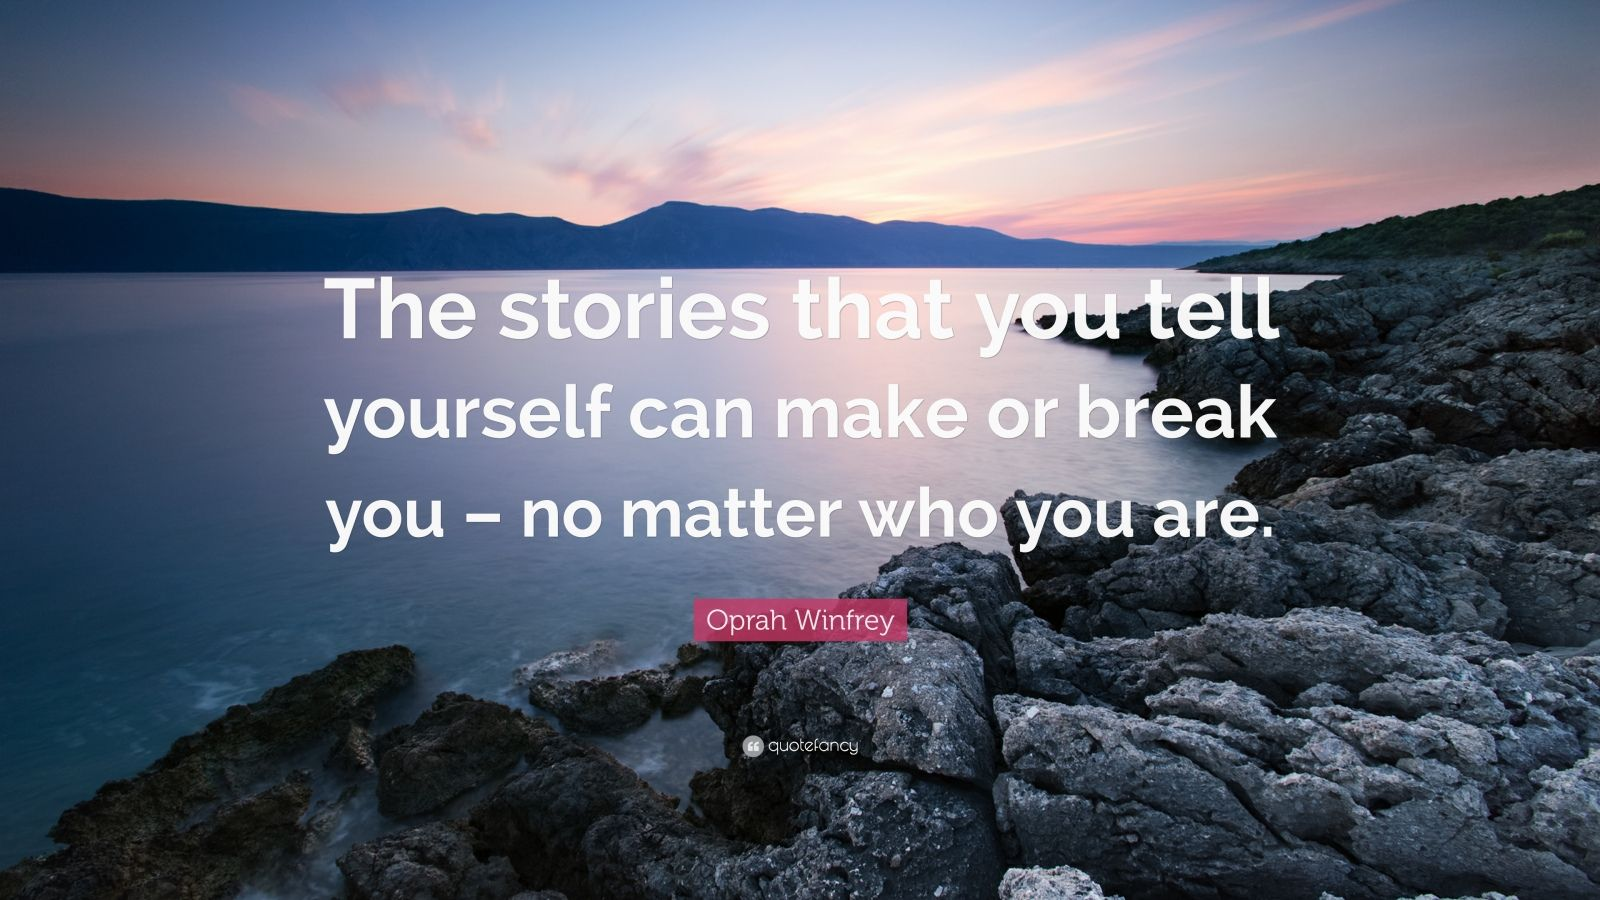 """Oprah Winfrey Quote: """"The stories that you tell yourself can make or break you – no matter who you are."""""""